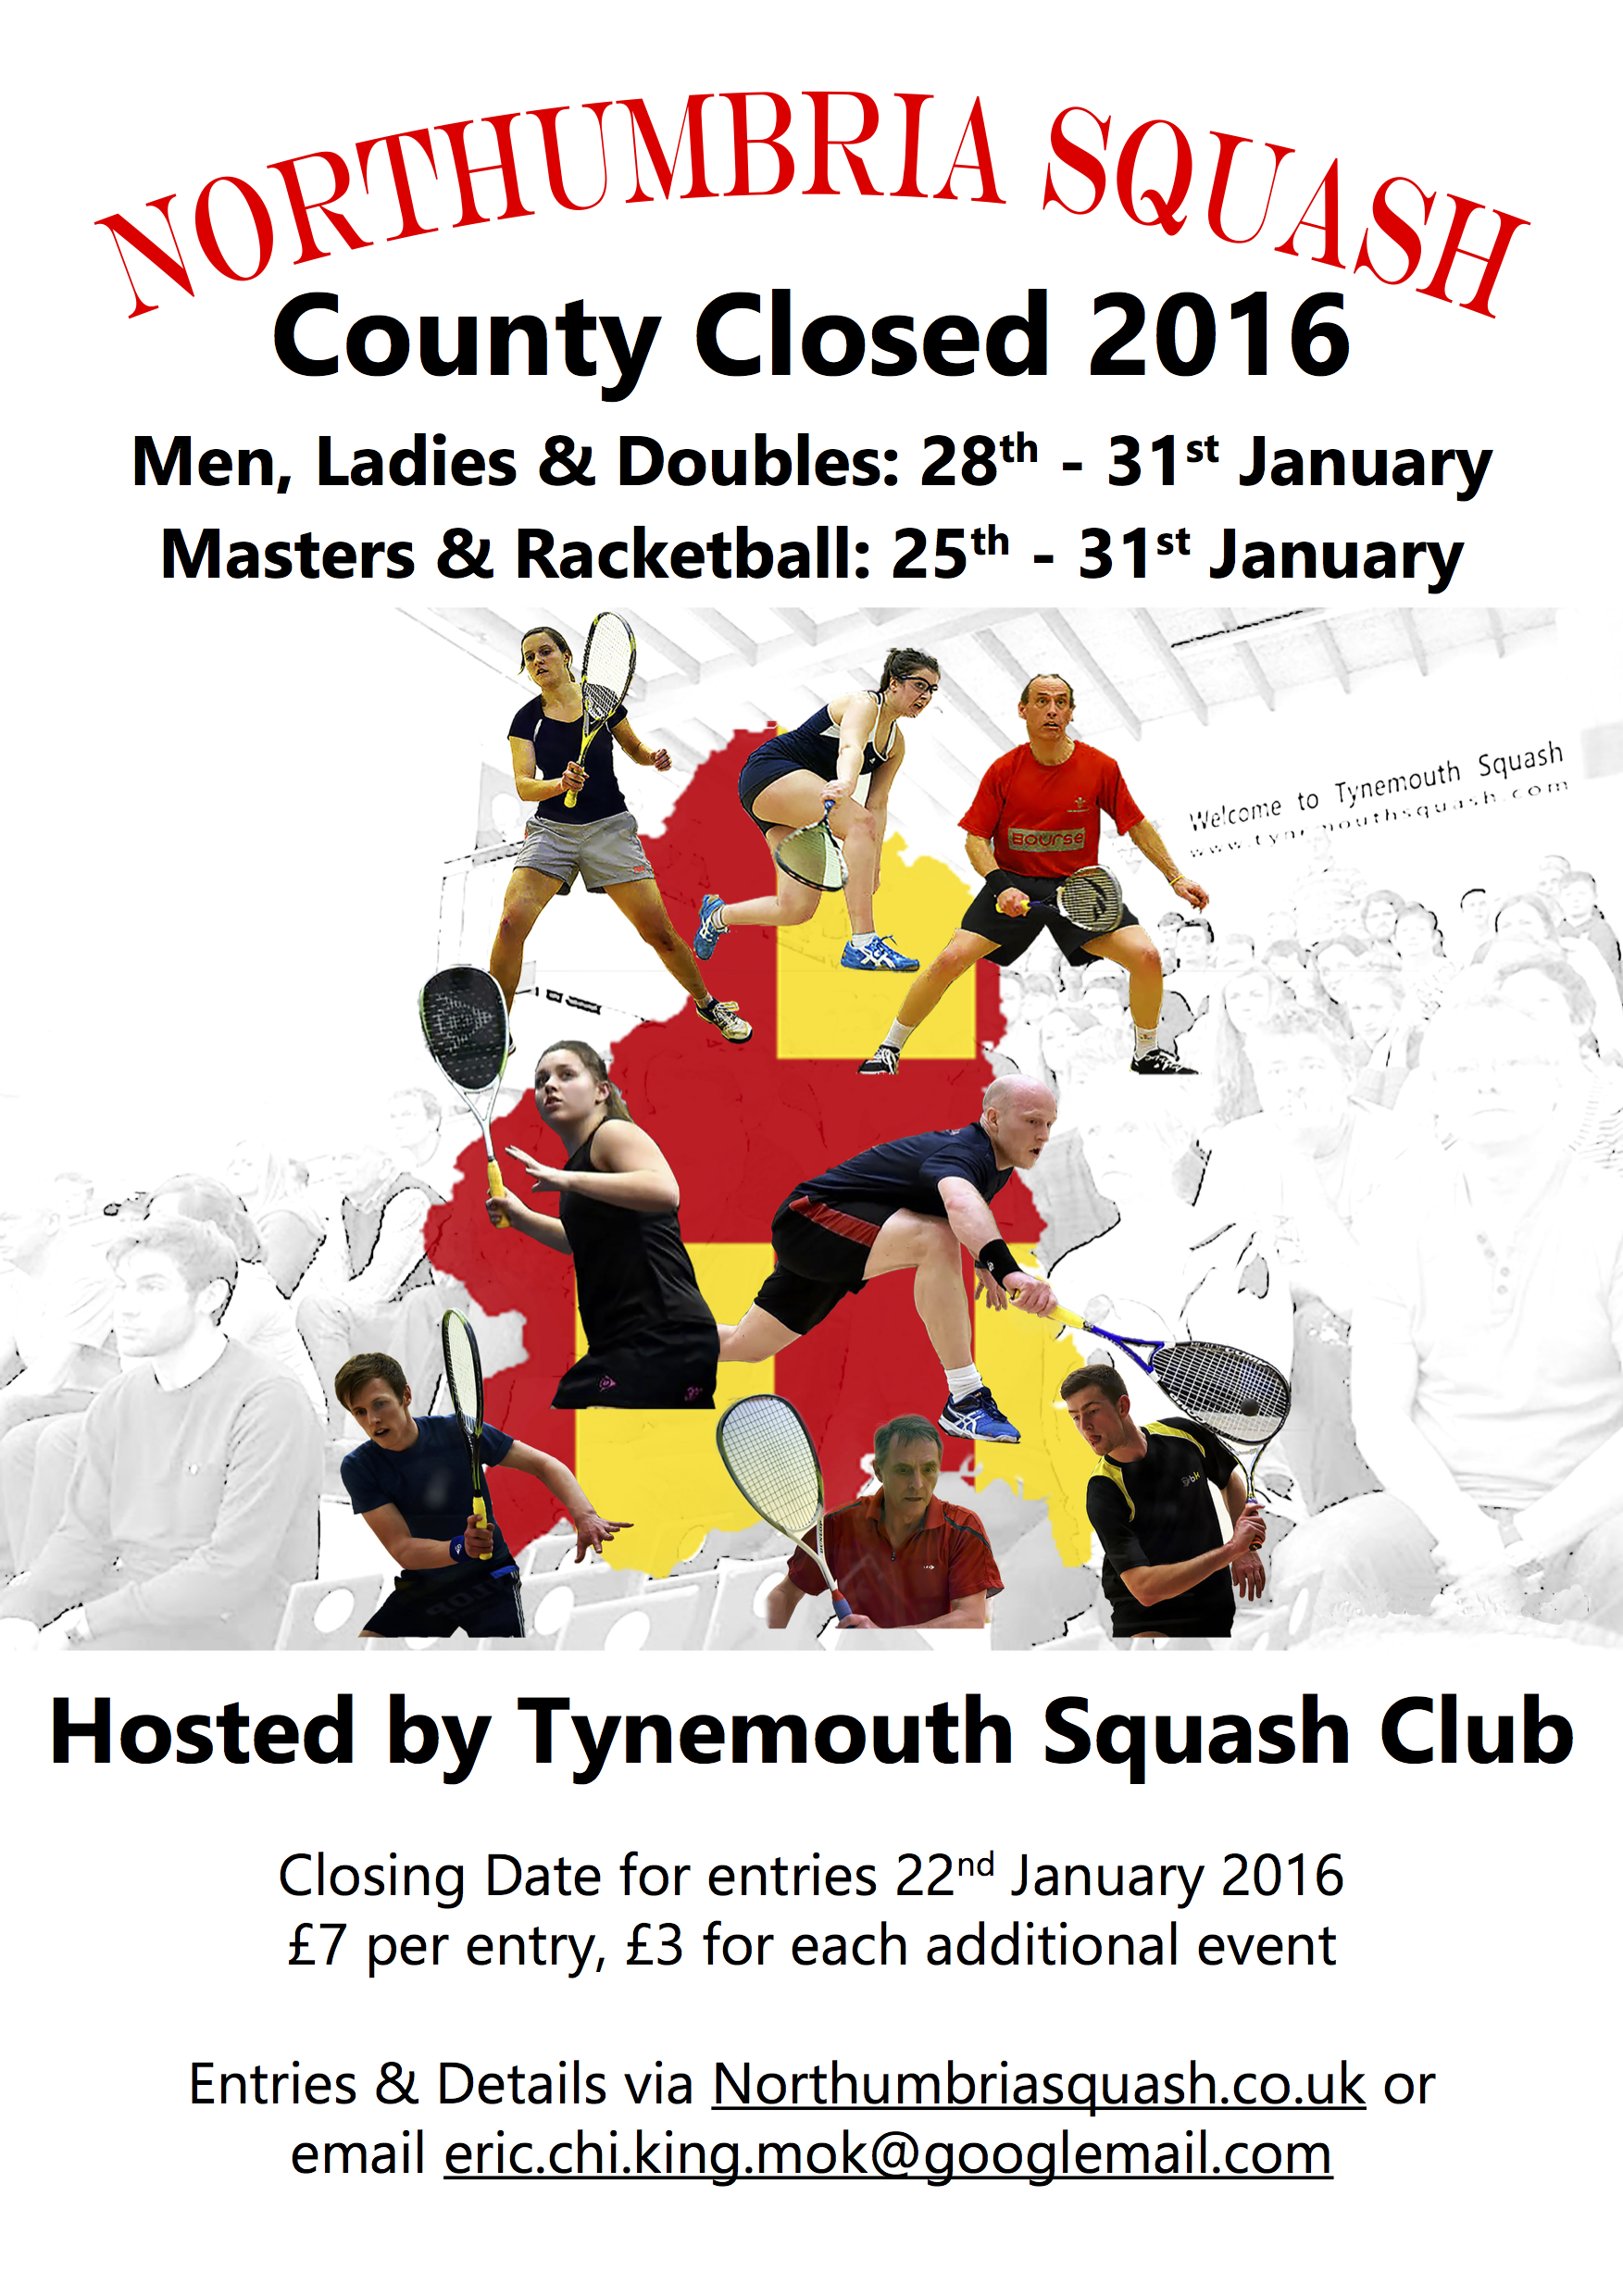 Northumbria_County_Closed_2016_Poster